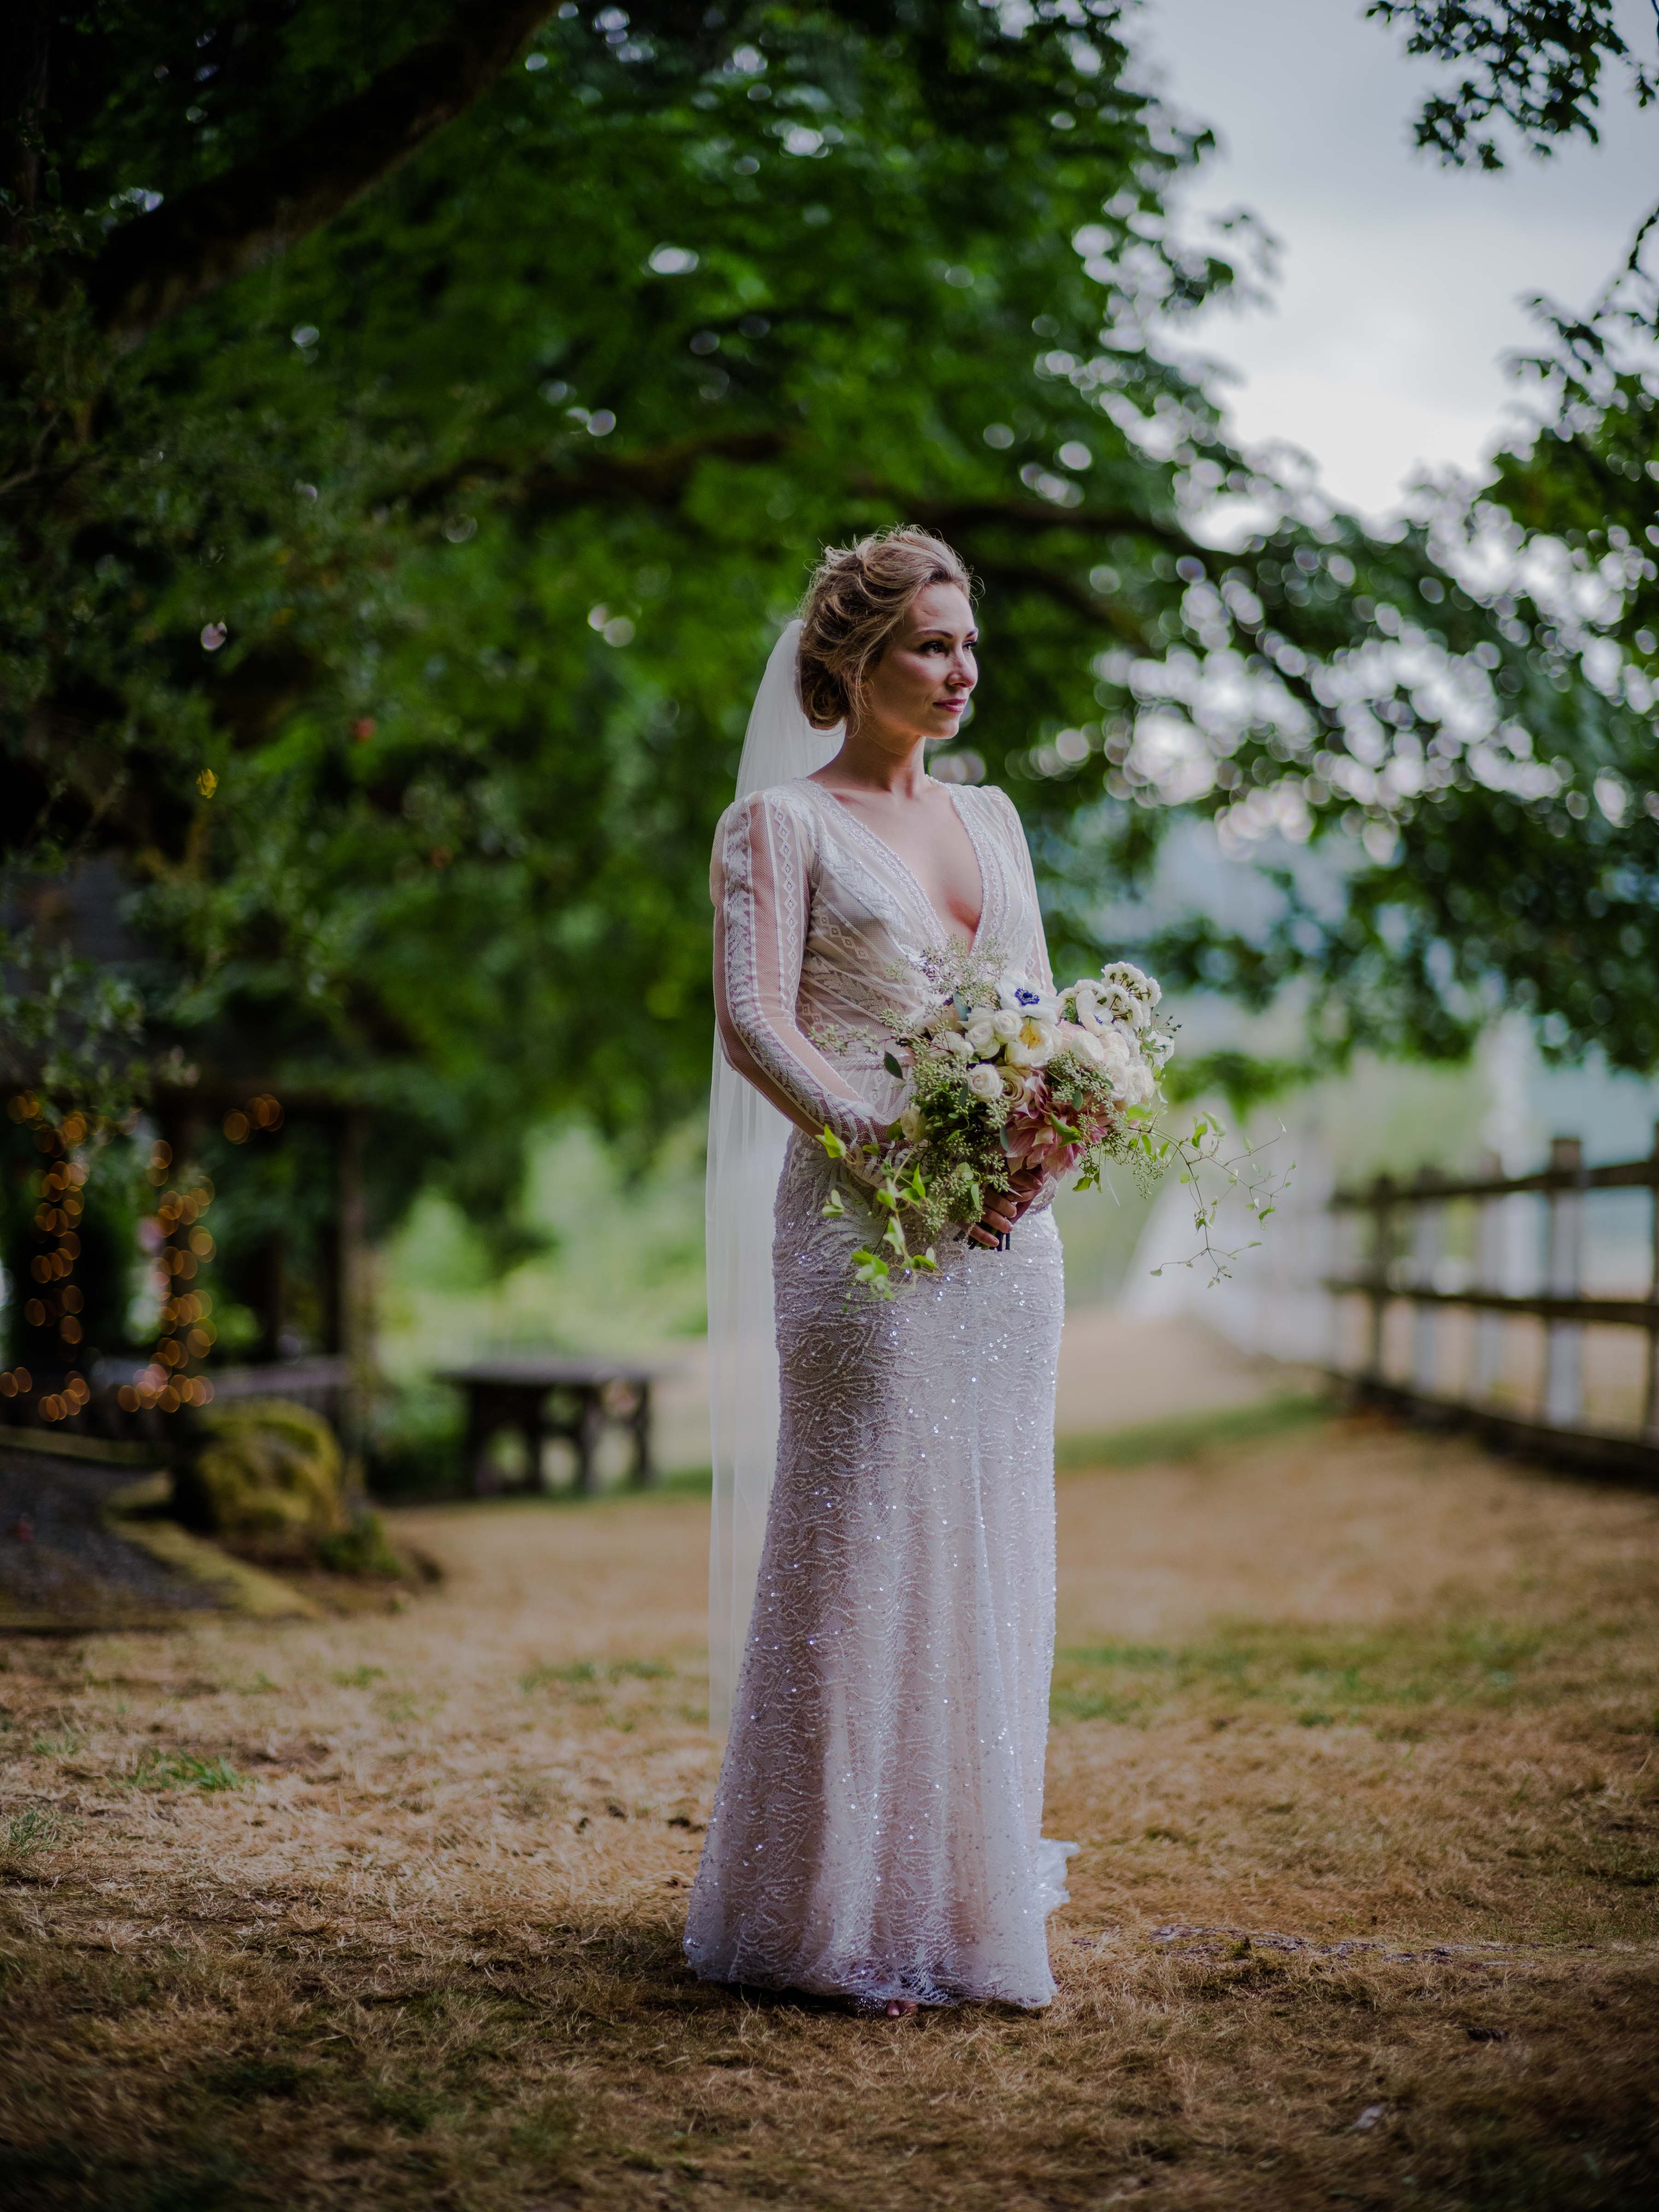 A bride at Chateau Lill - A Luxe Garden Wedding at Chateau Lill by Flora Nova Design Seattle